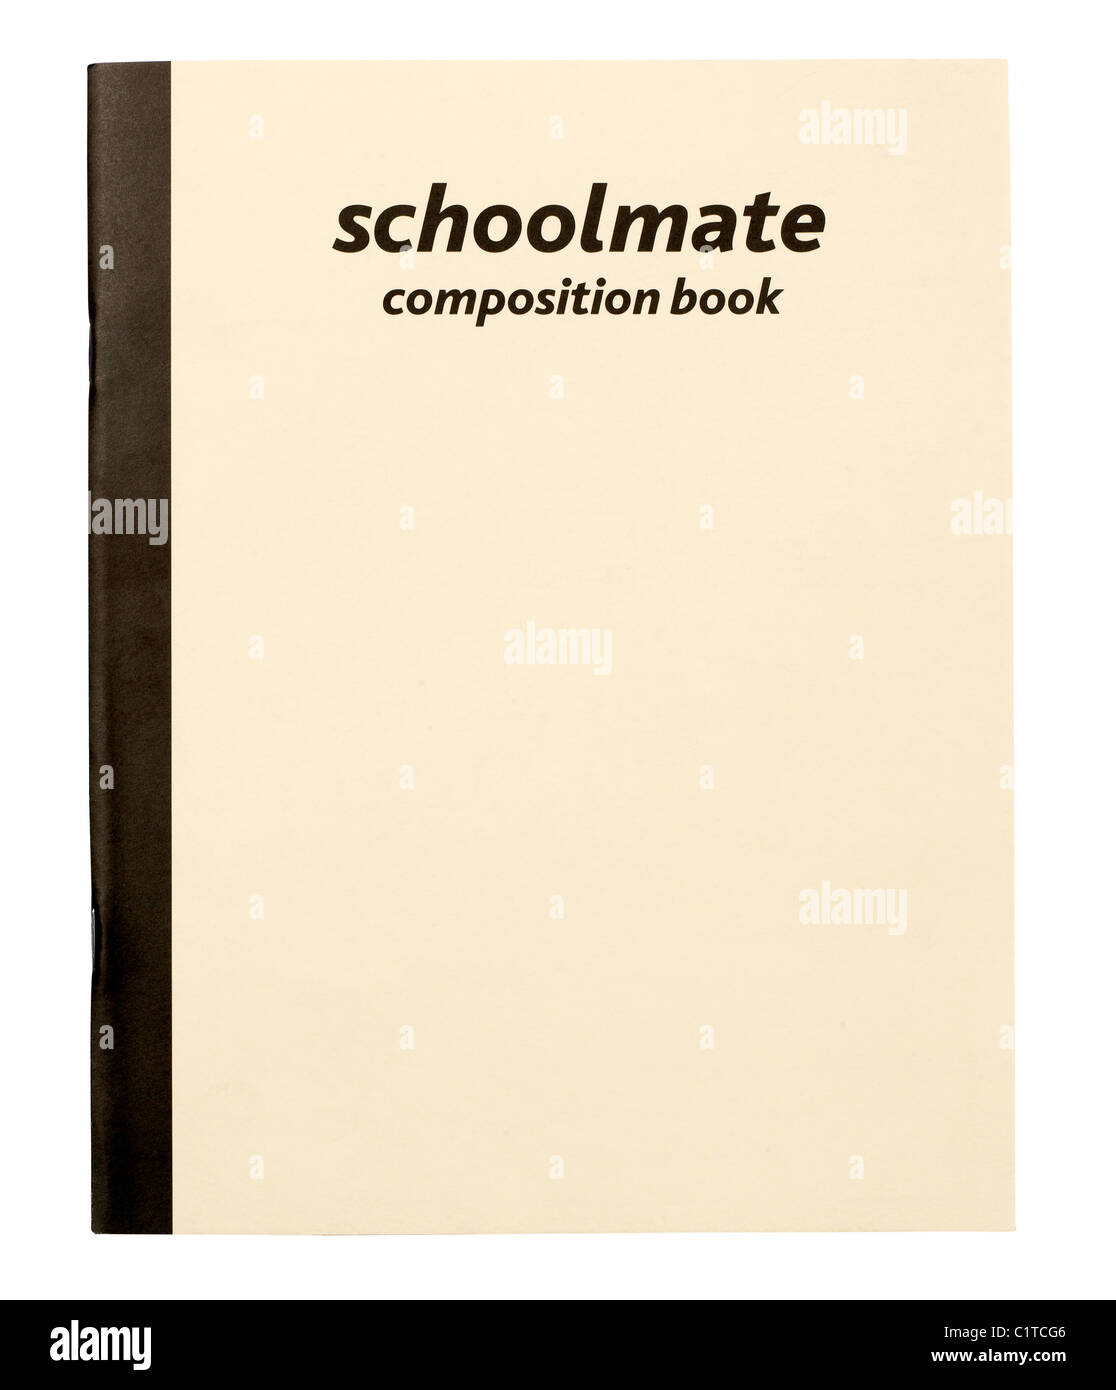 Composition book - Stock Image